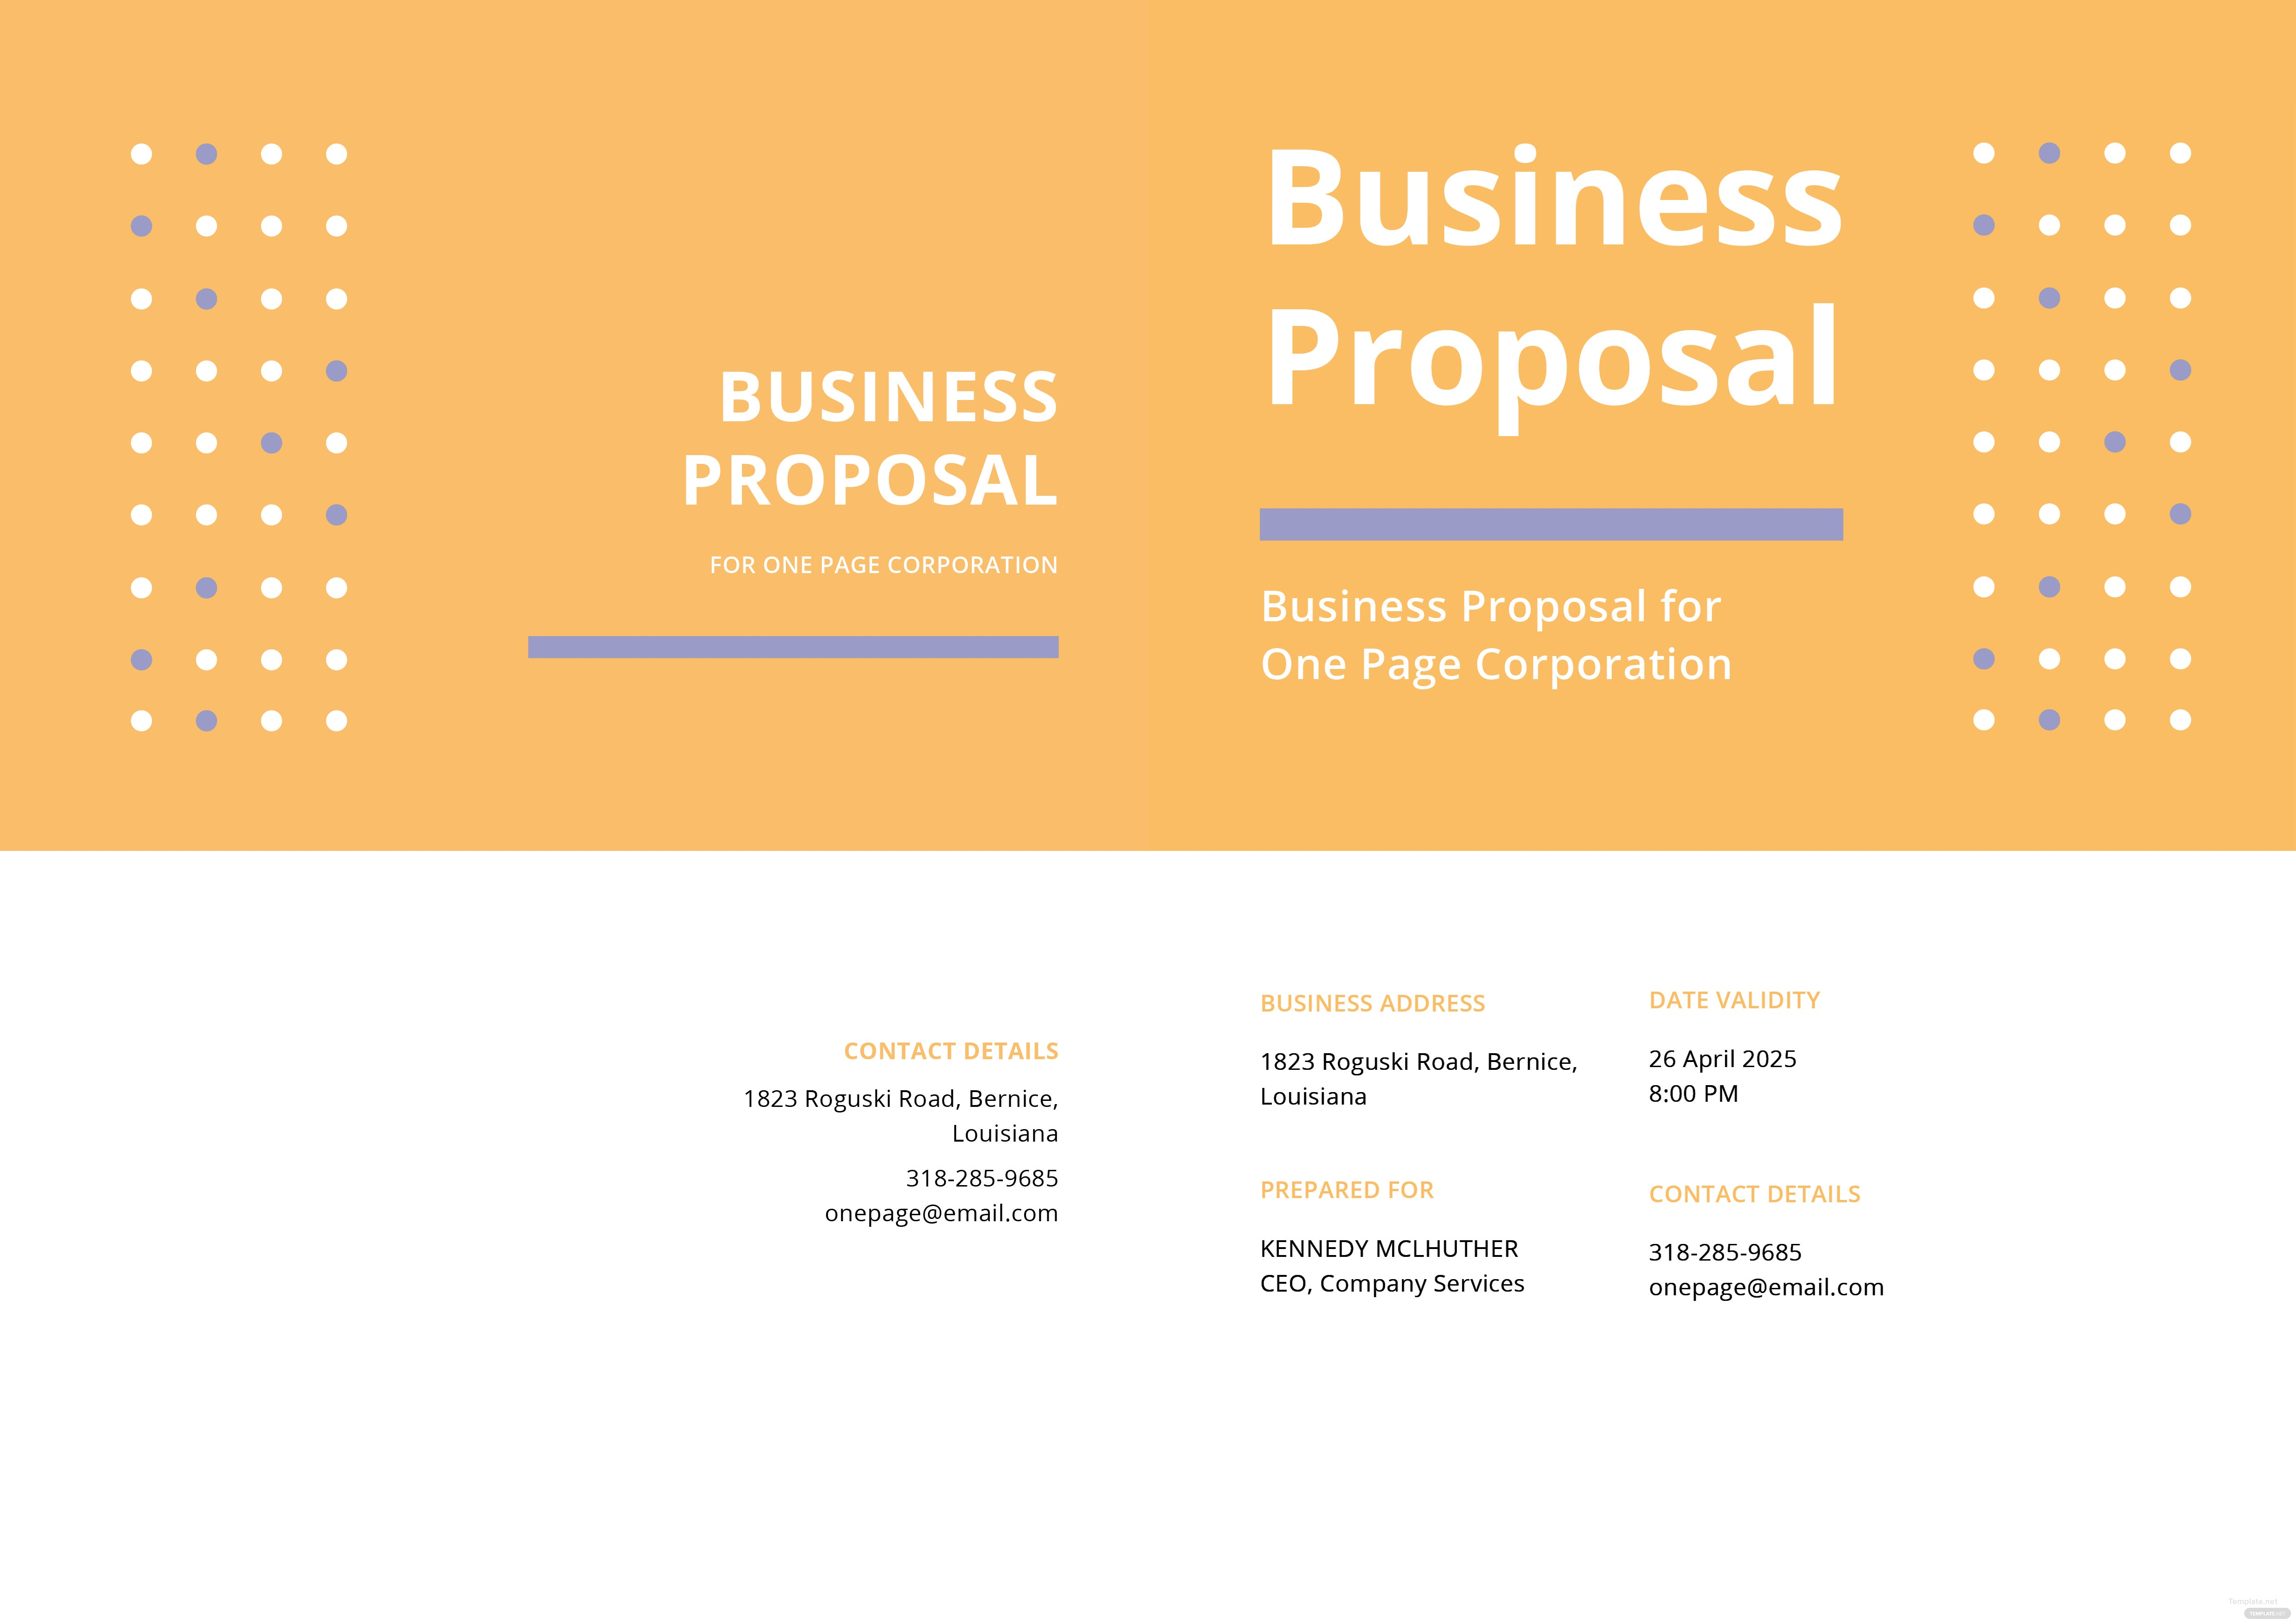 click to see full template one page proposal